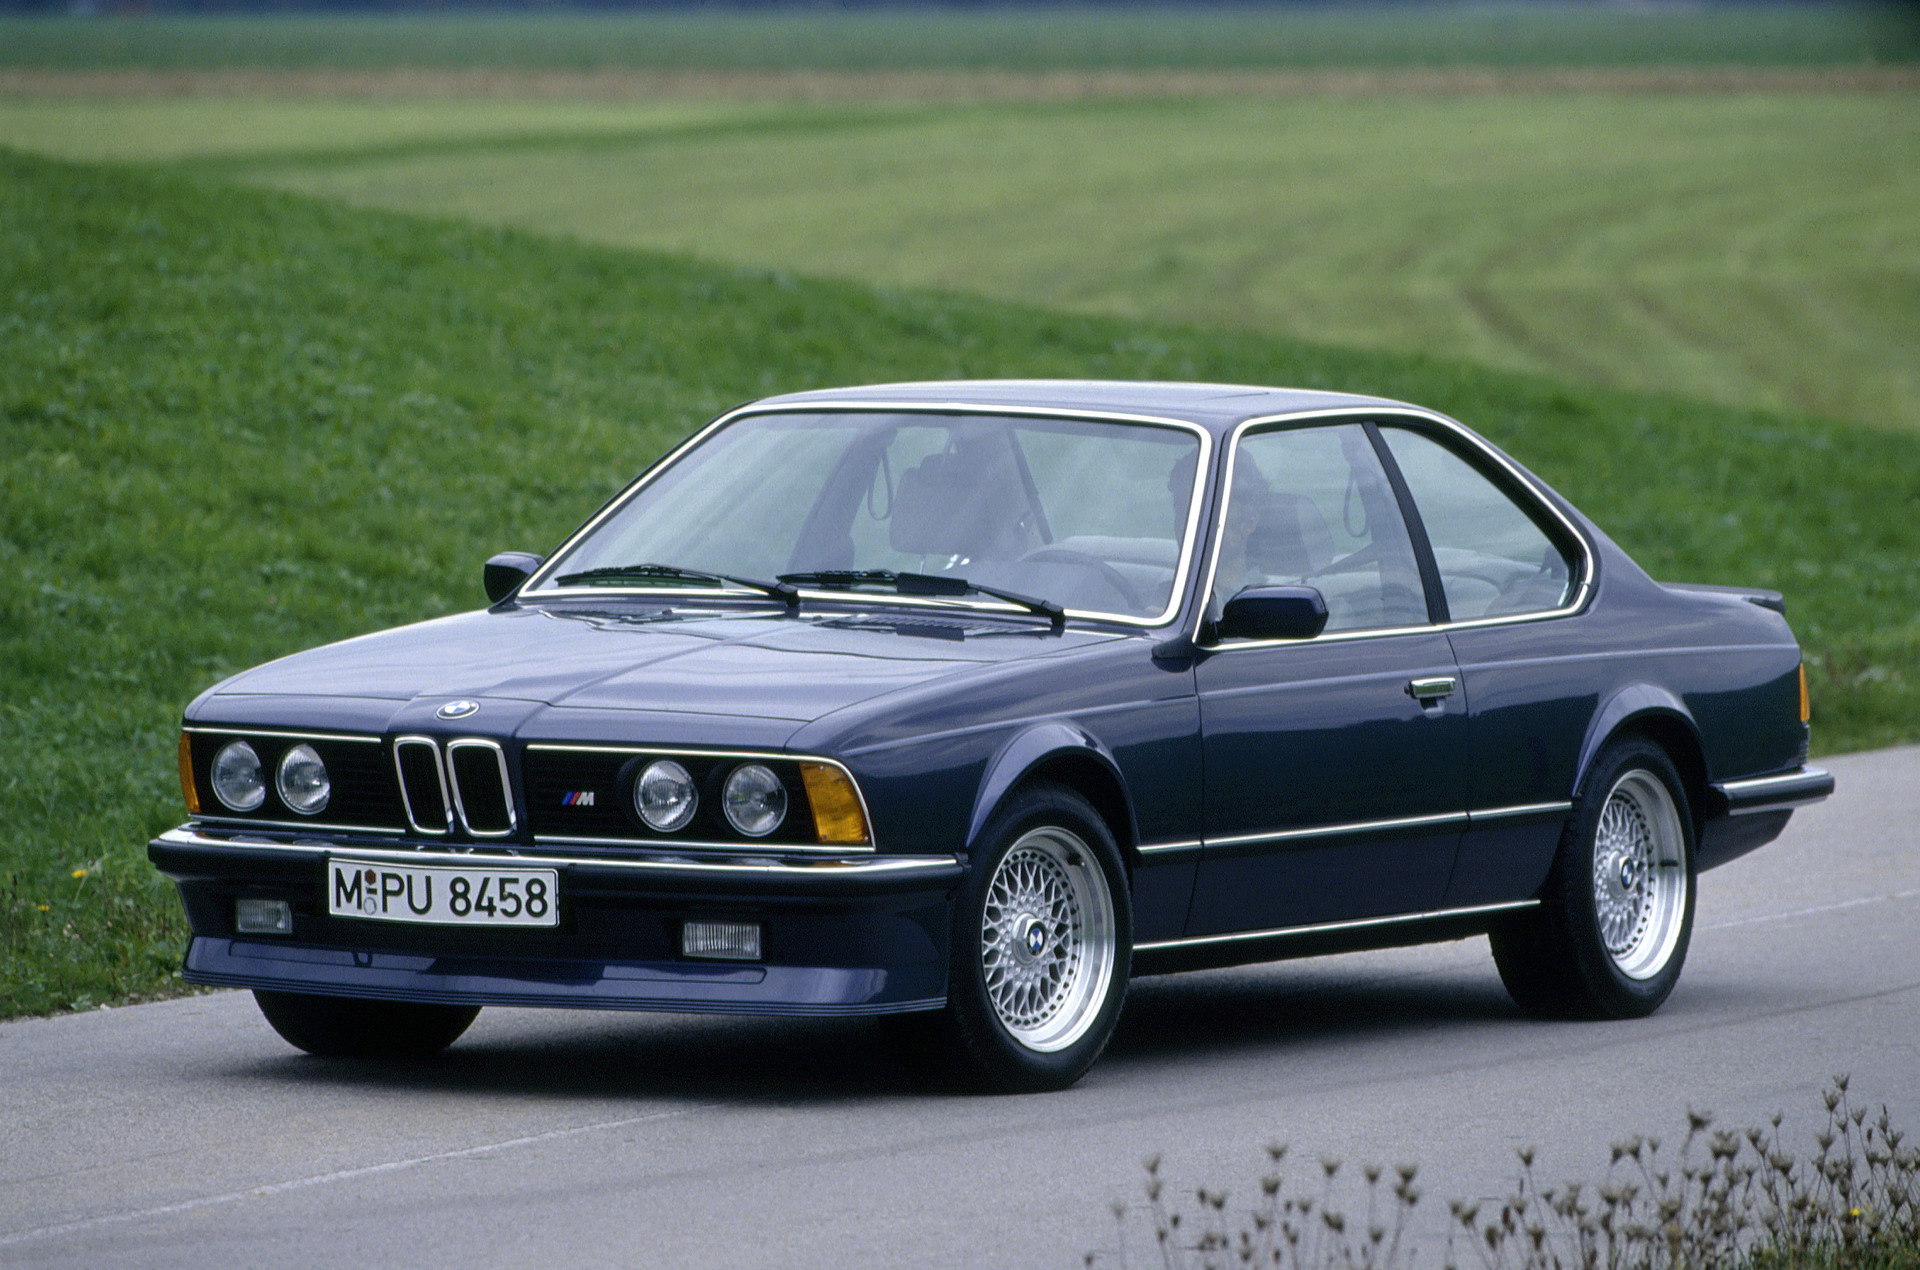 Heritage From E24 To G32 The Tumultuous History Of The Bmw 6 Series